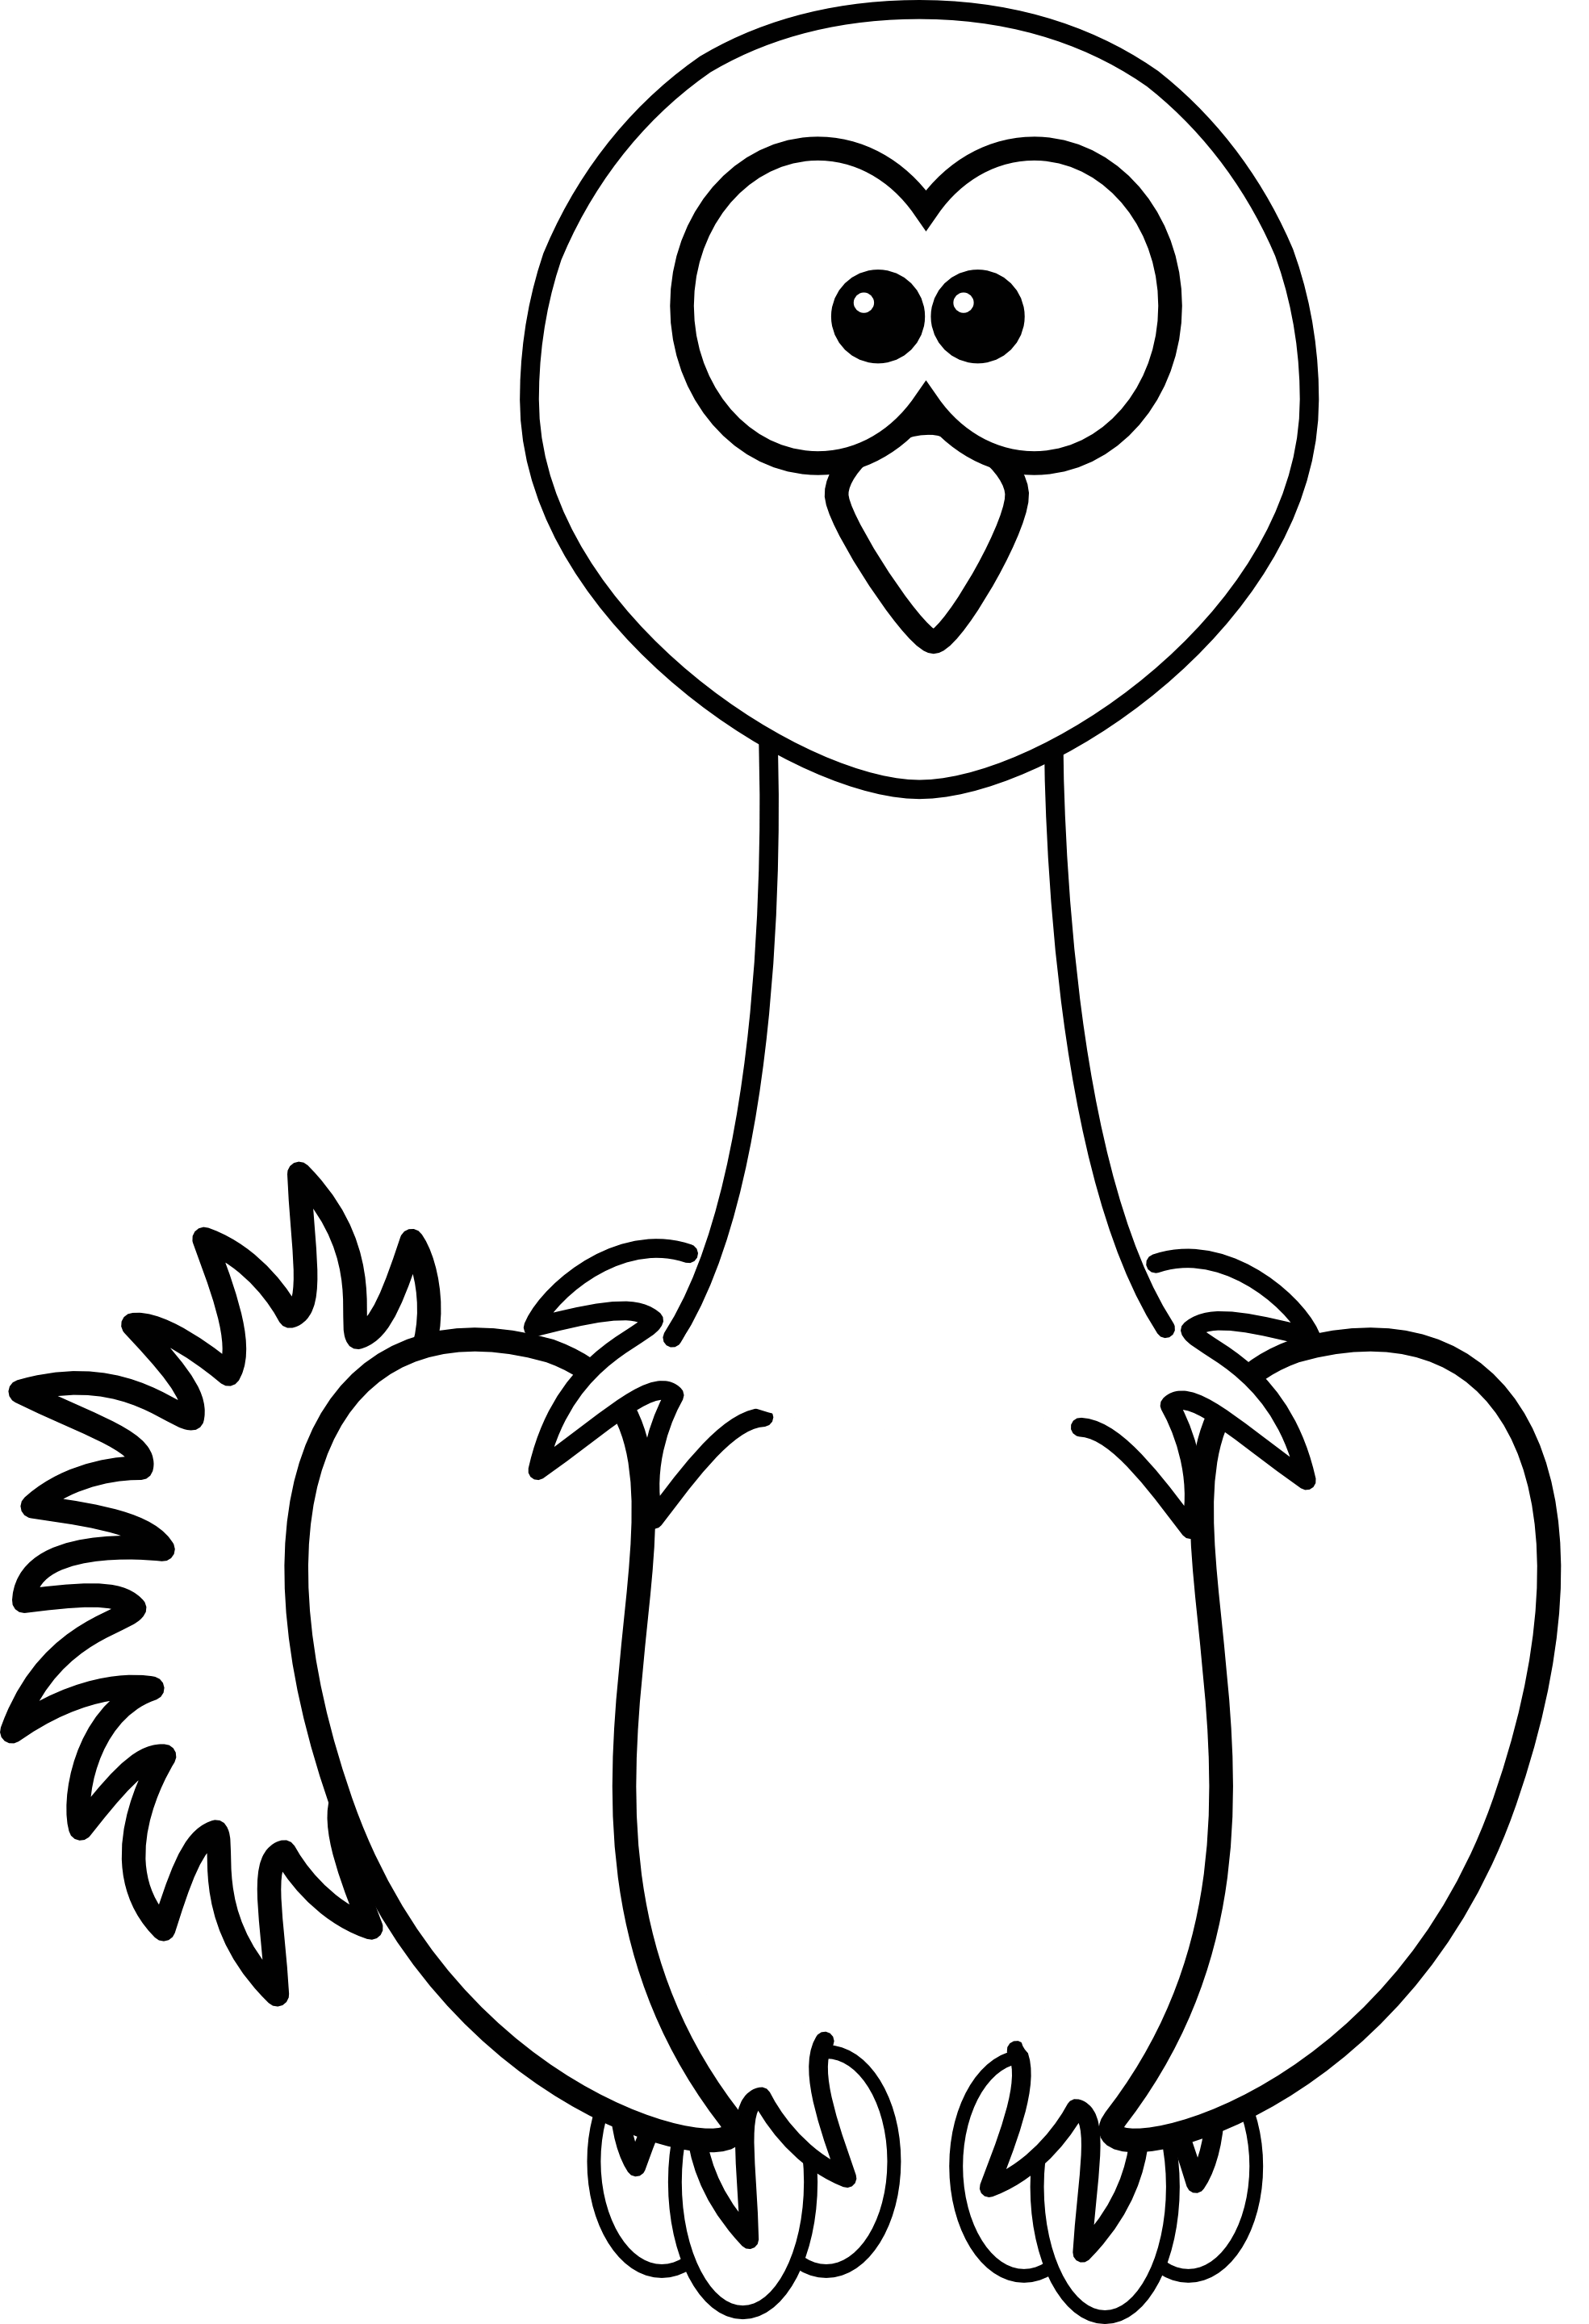 Ostrich clipart white background. Clip art library